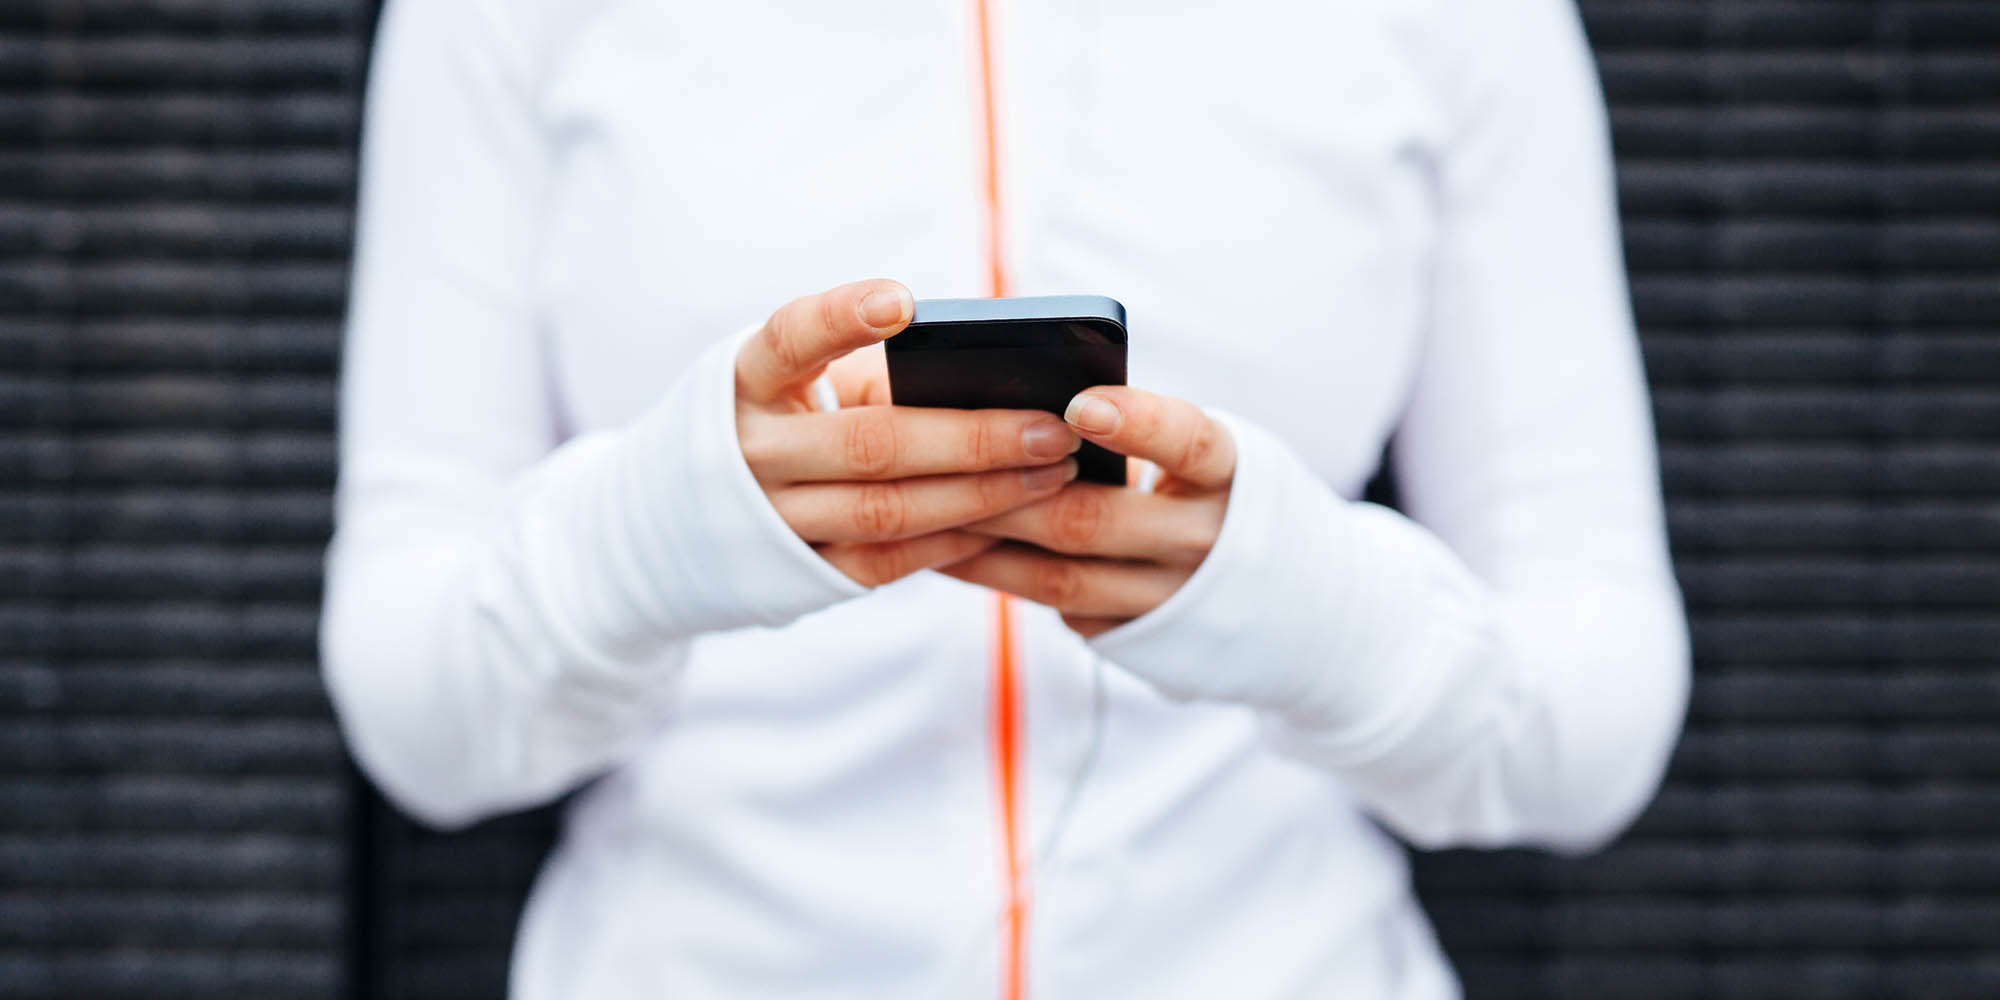 The Do's and Don'ts of Losing Weight With Social Media